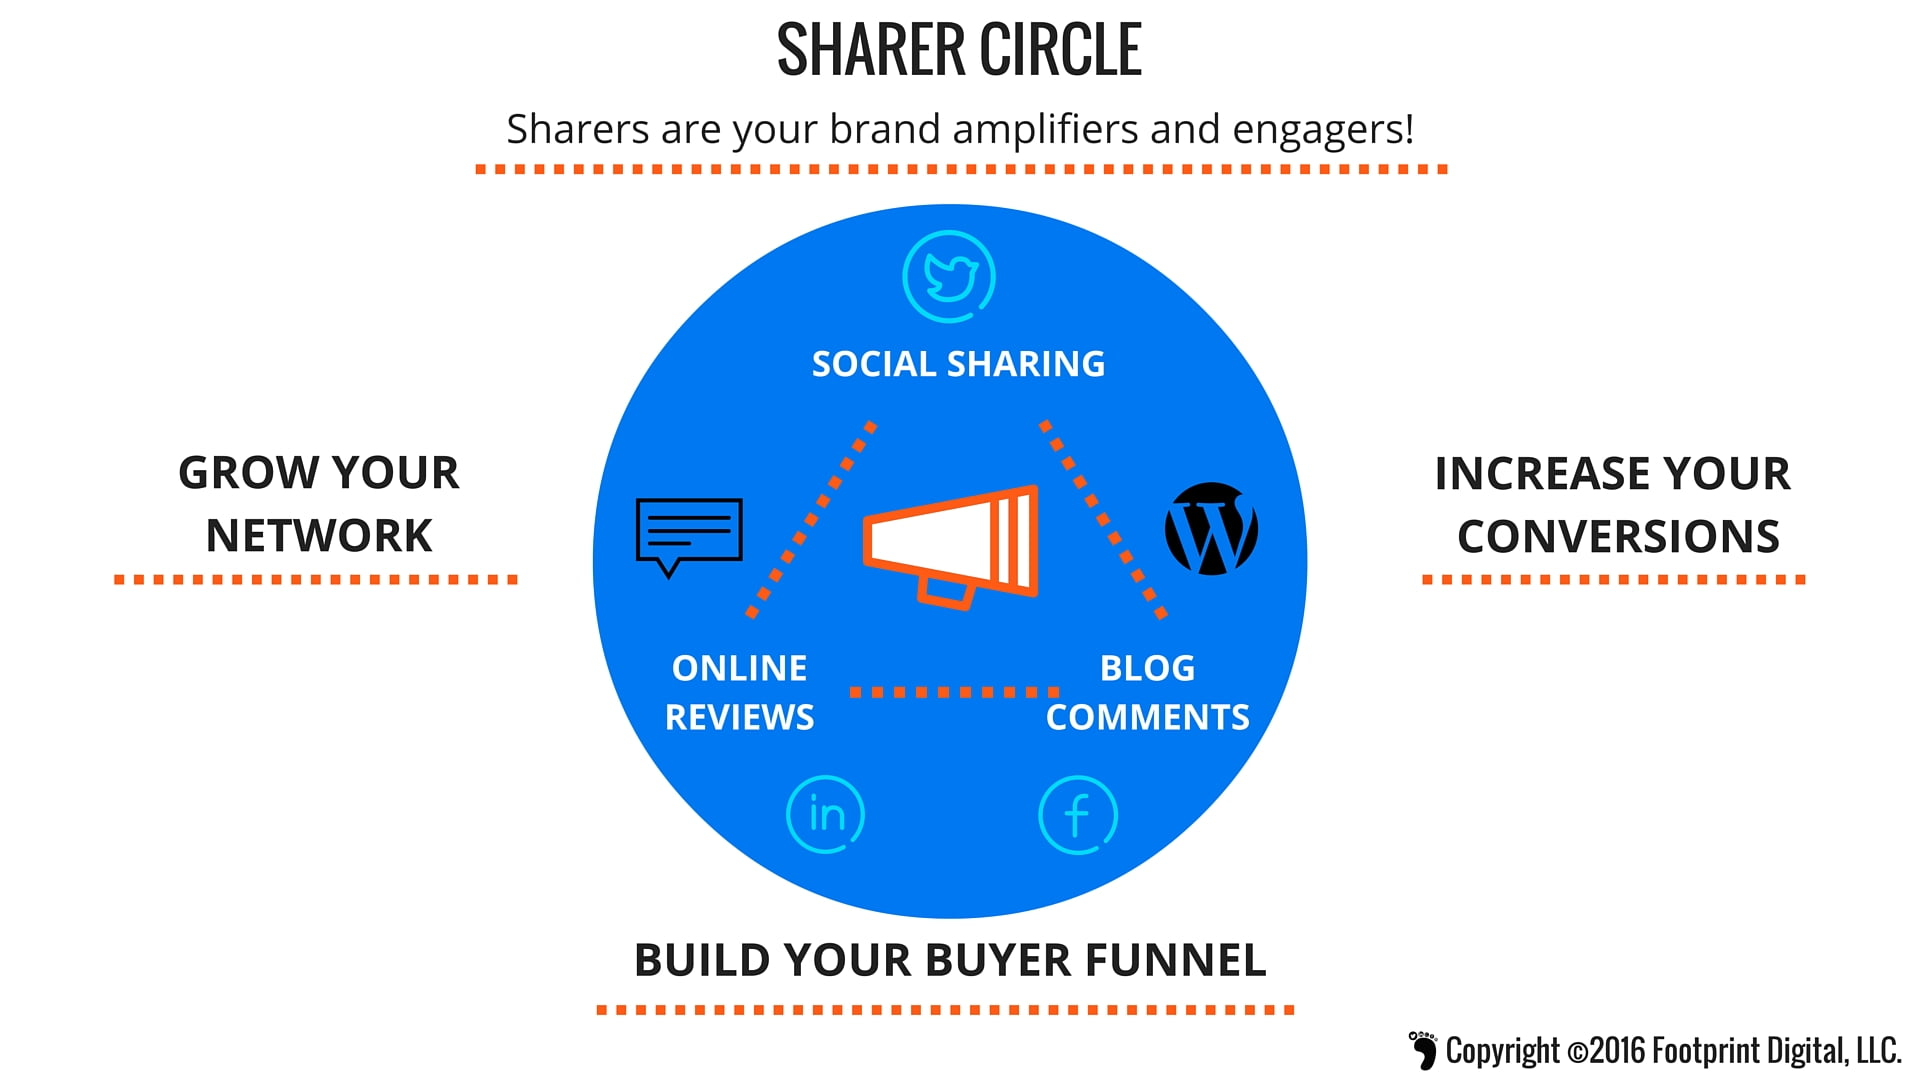 Sharers are your brand amplifiers and engagers!